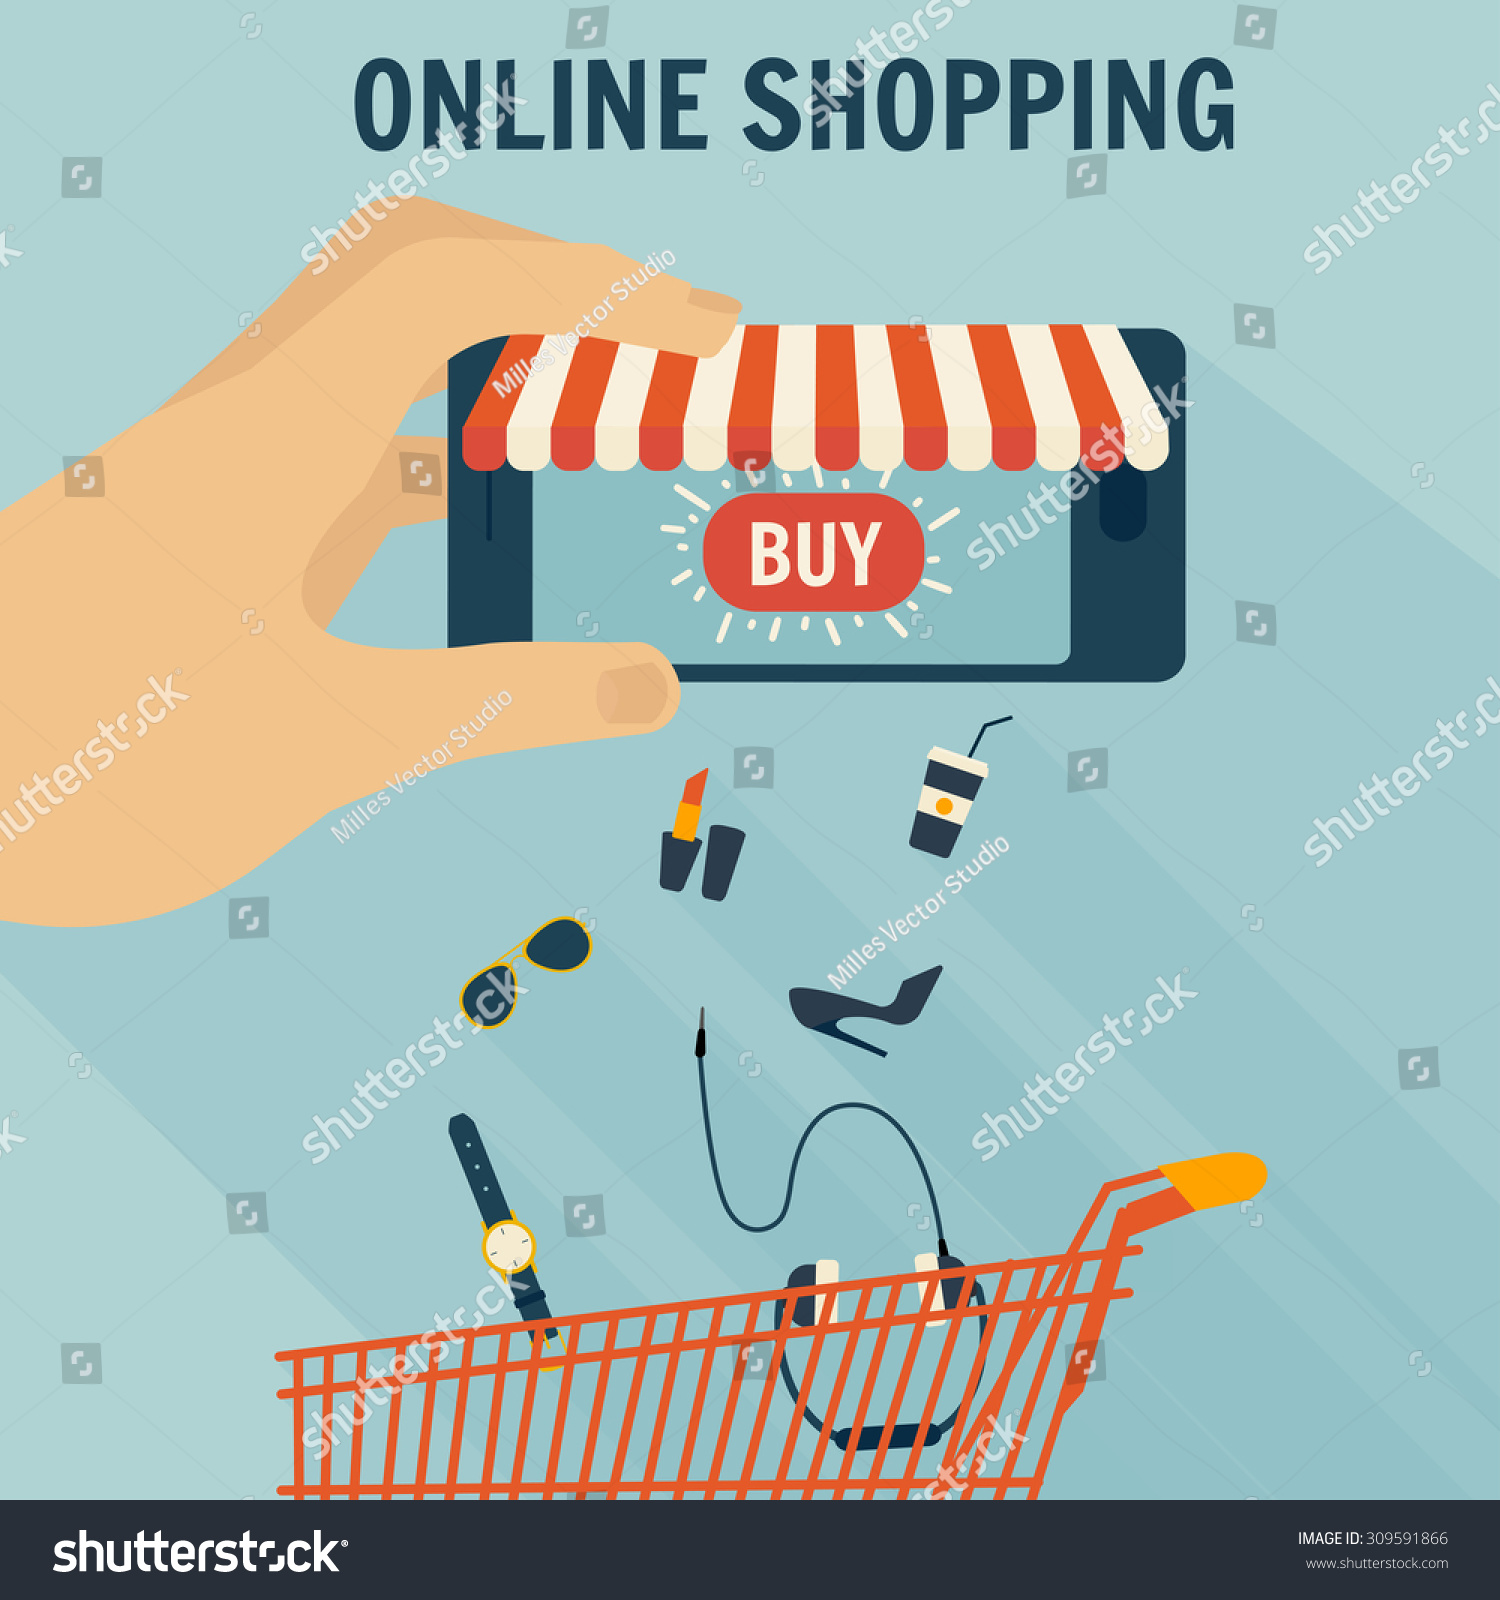 Cell phone shop online